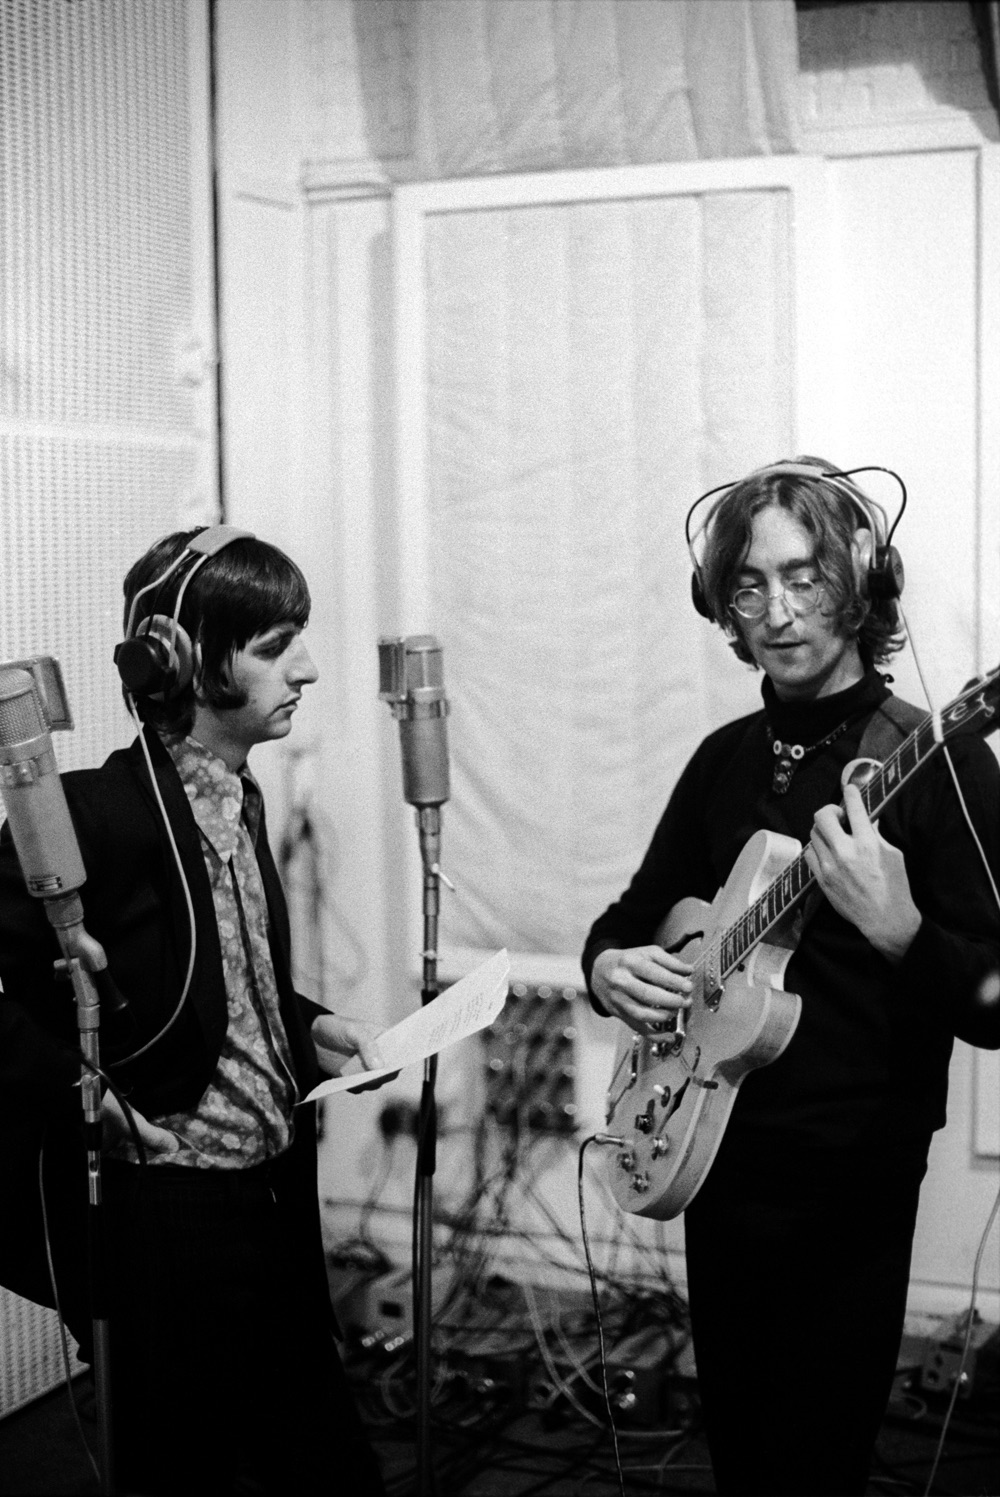 Ringo Starr and John Lennon recording Good Night for the White Album, 1968.